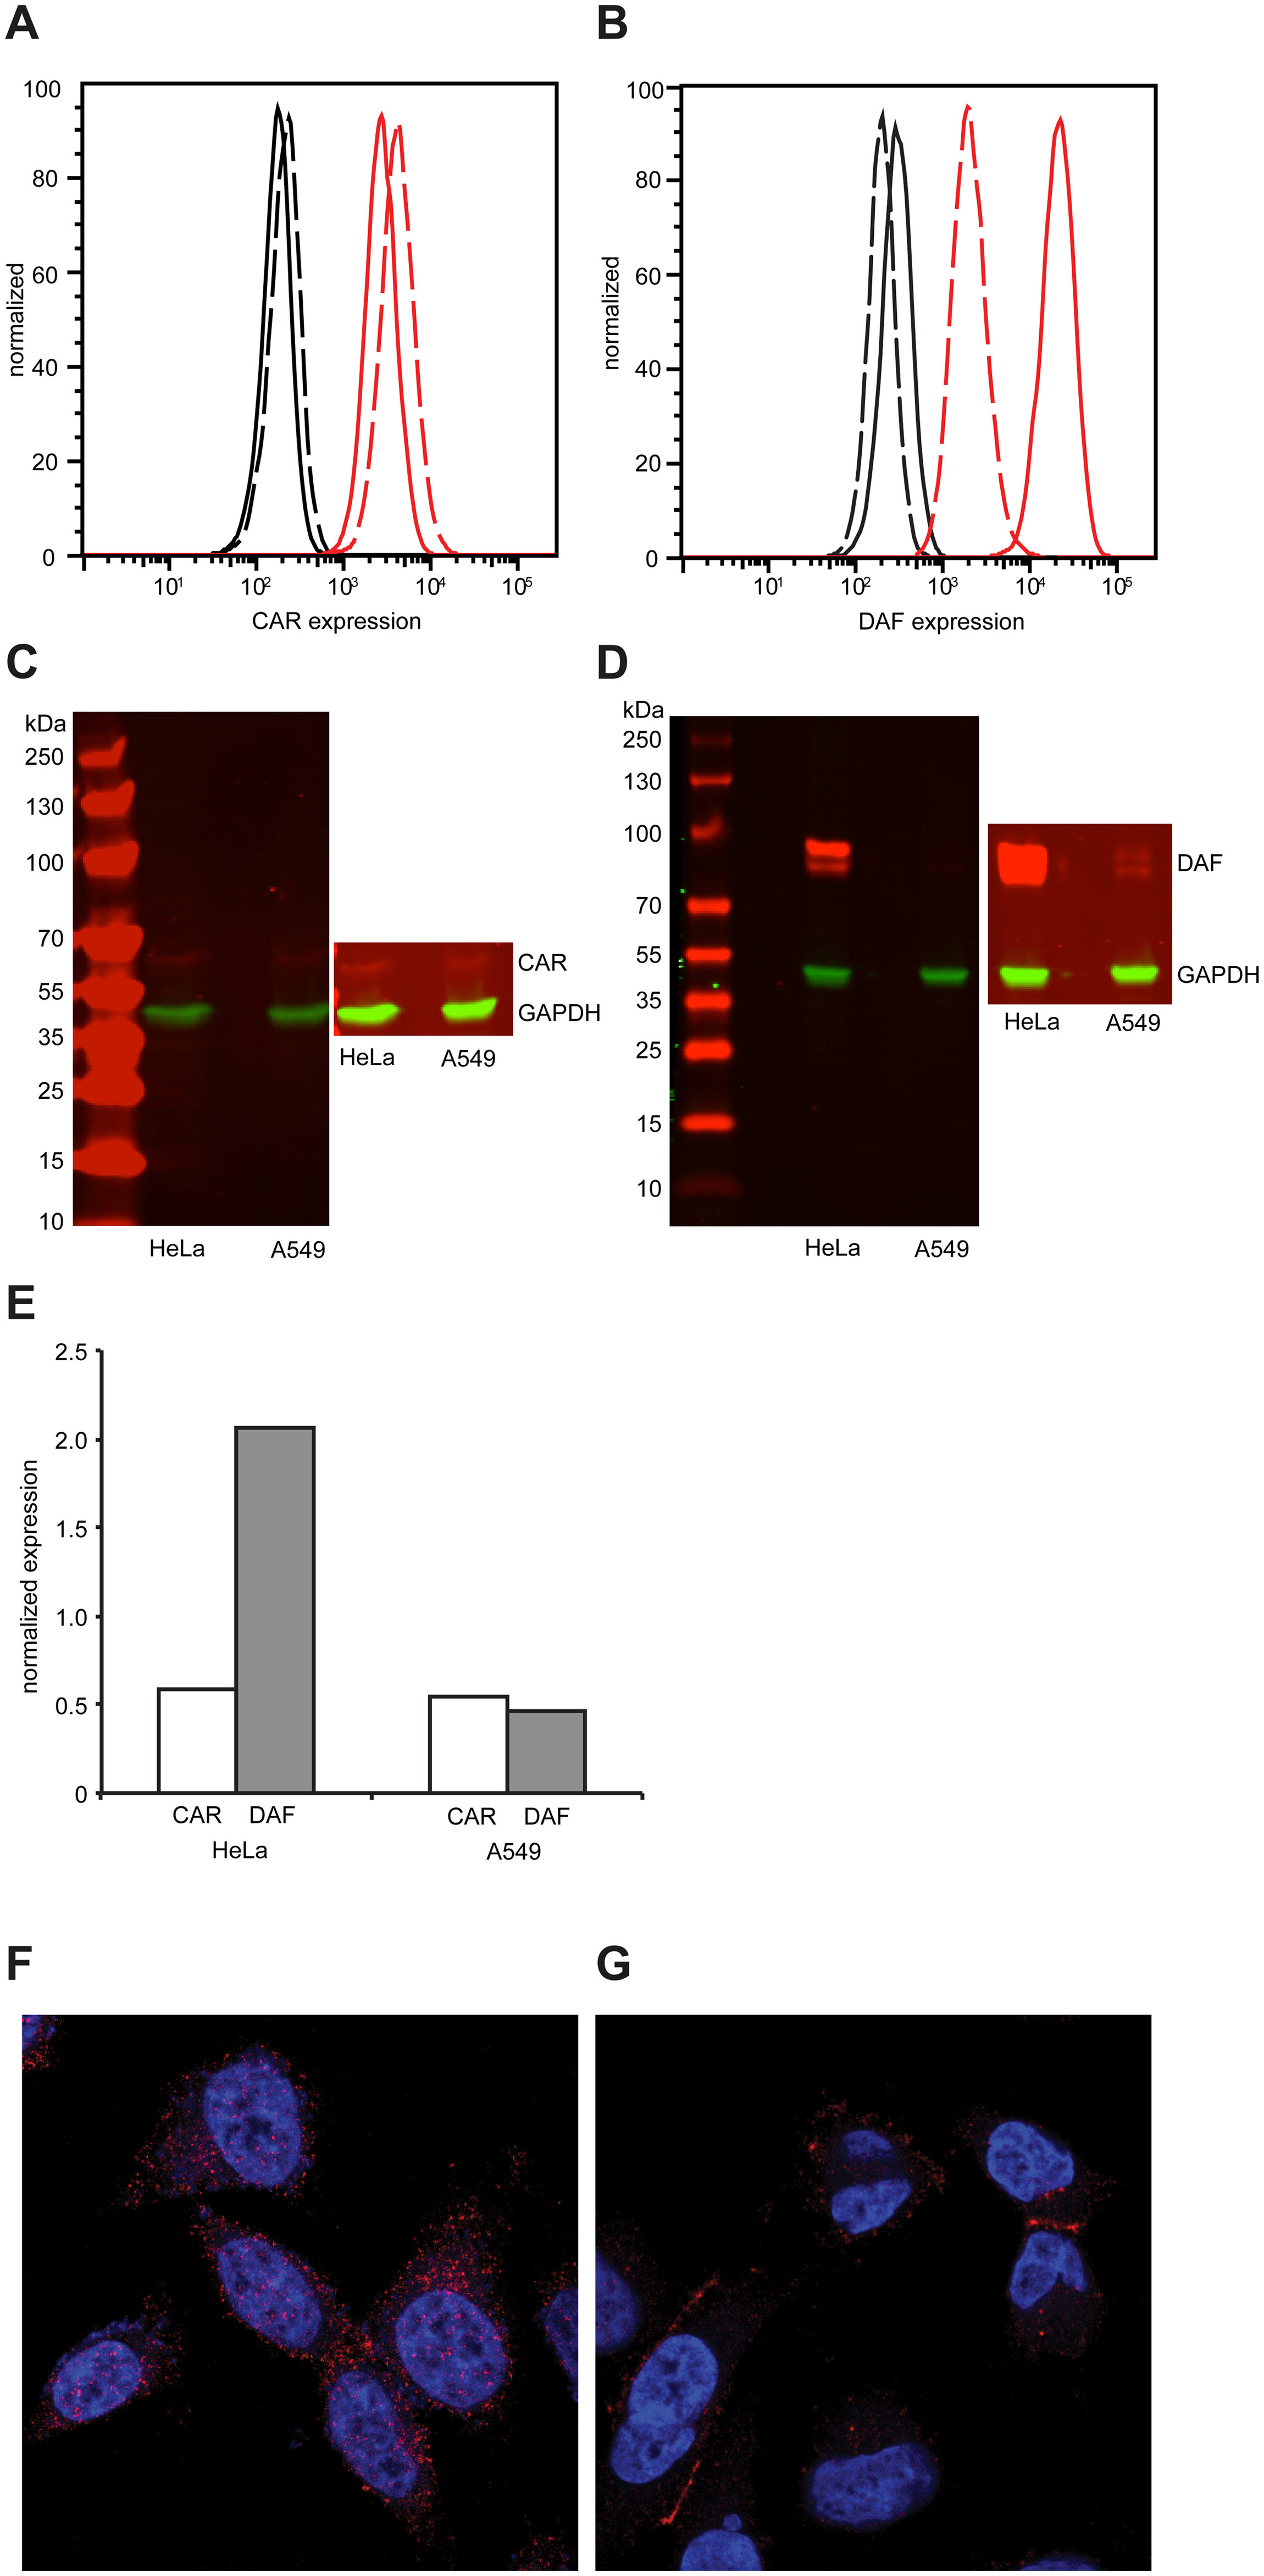 Differential expression of CAR and DAF in HeLa and A549 cells.